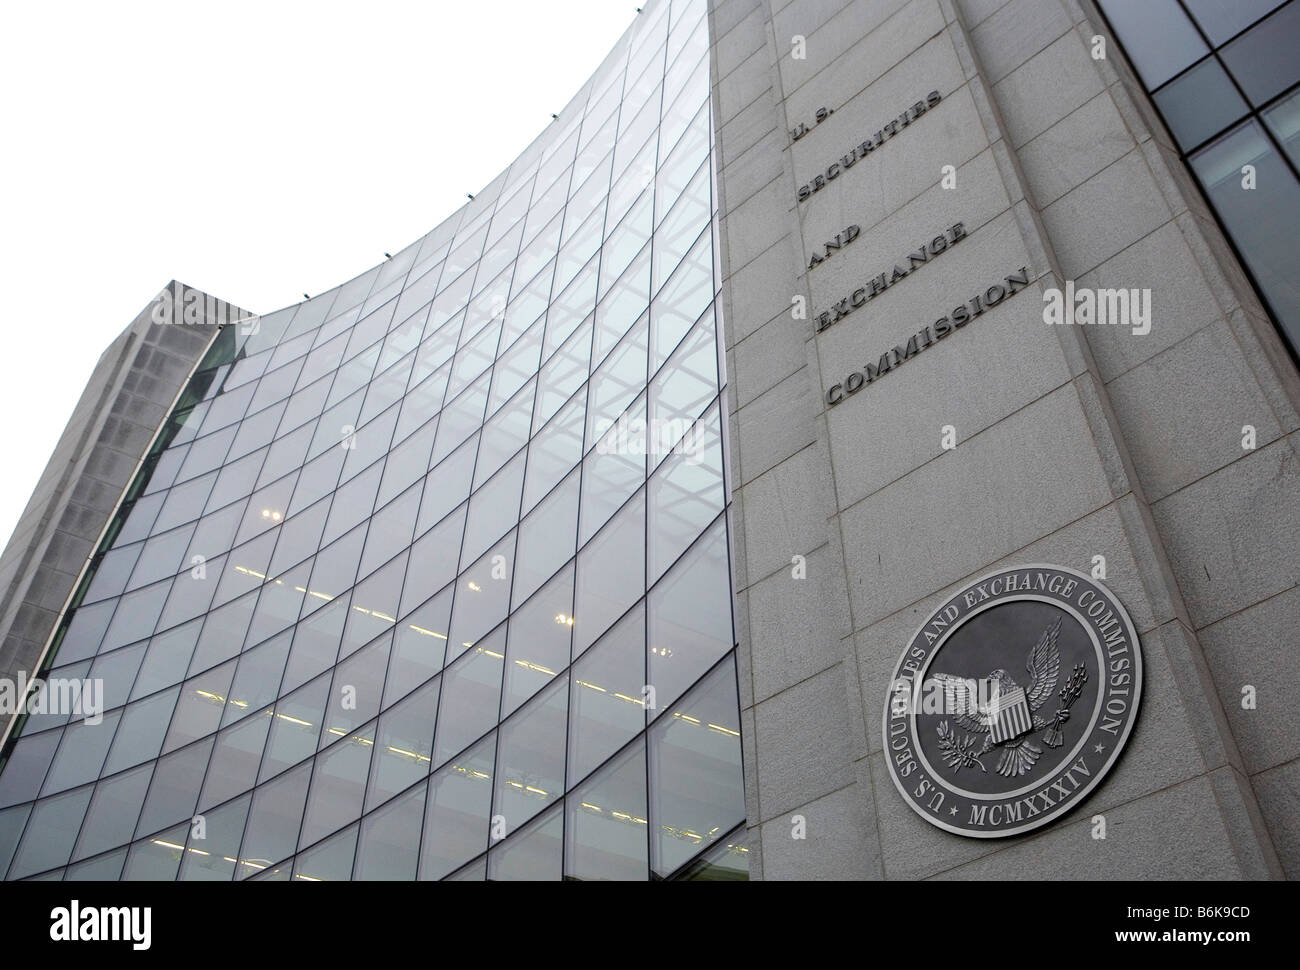 19 December 2008 Washington D C The headquarters of the Securities and Exchange Commission - Stock Image